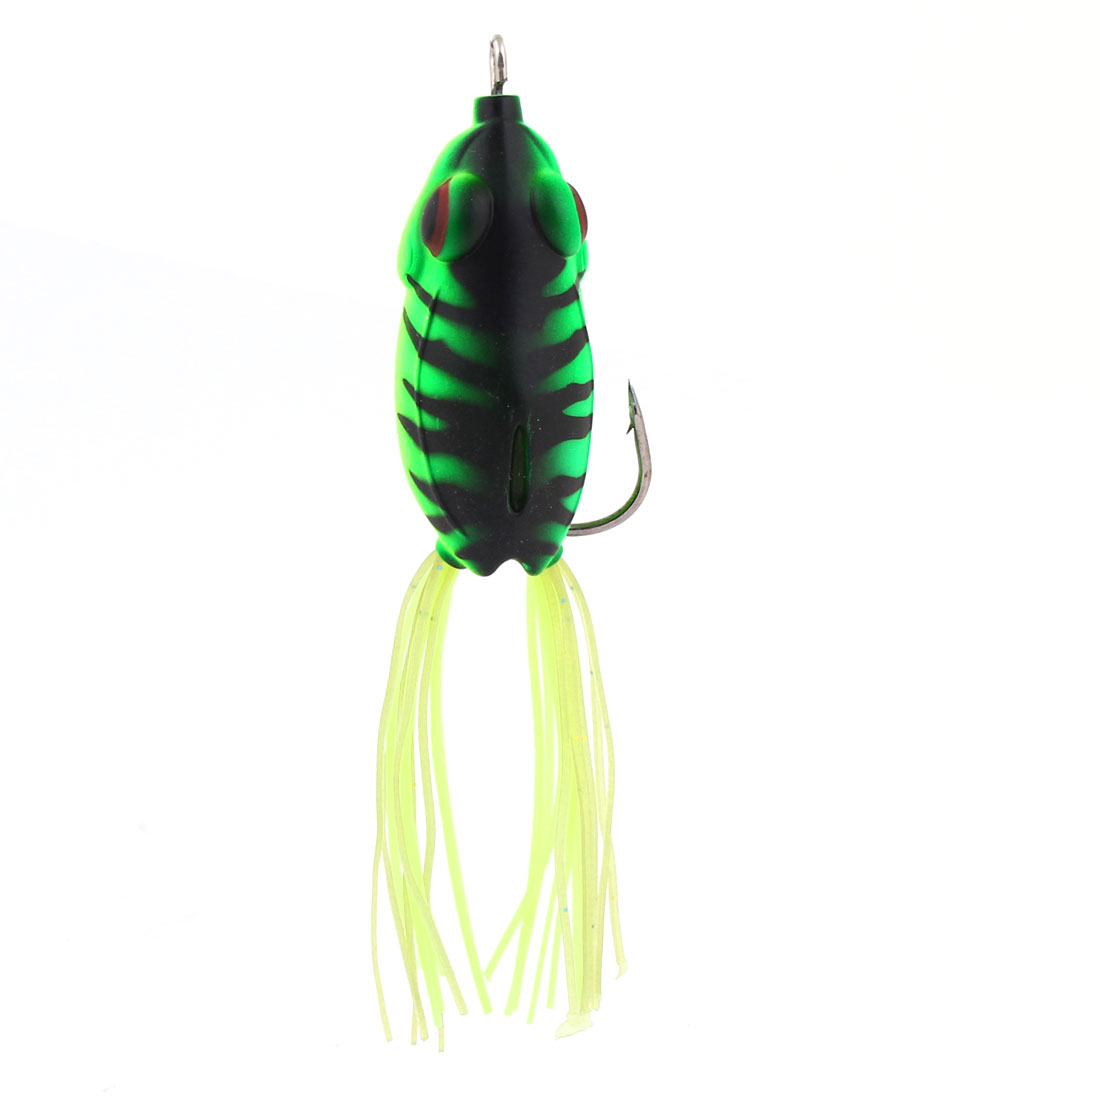 Soft Silicone Artificial Snakehead Frog Lure Fishing Baits Green Black